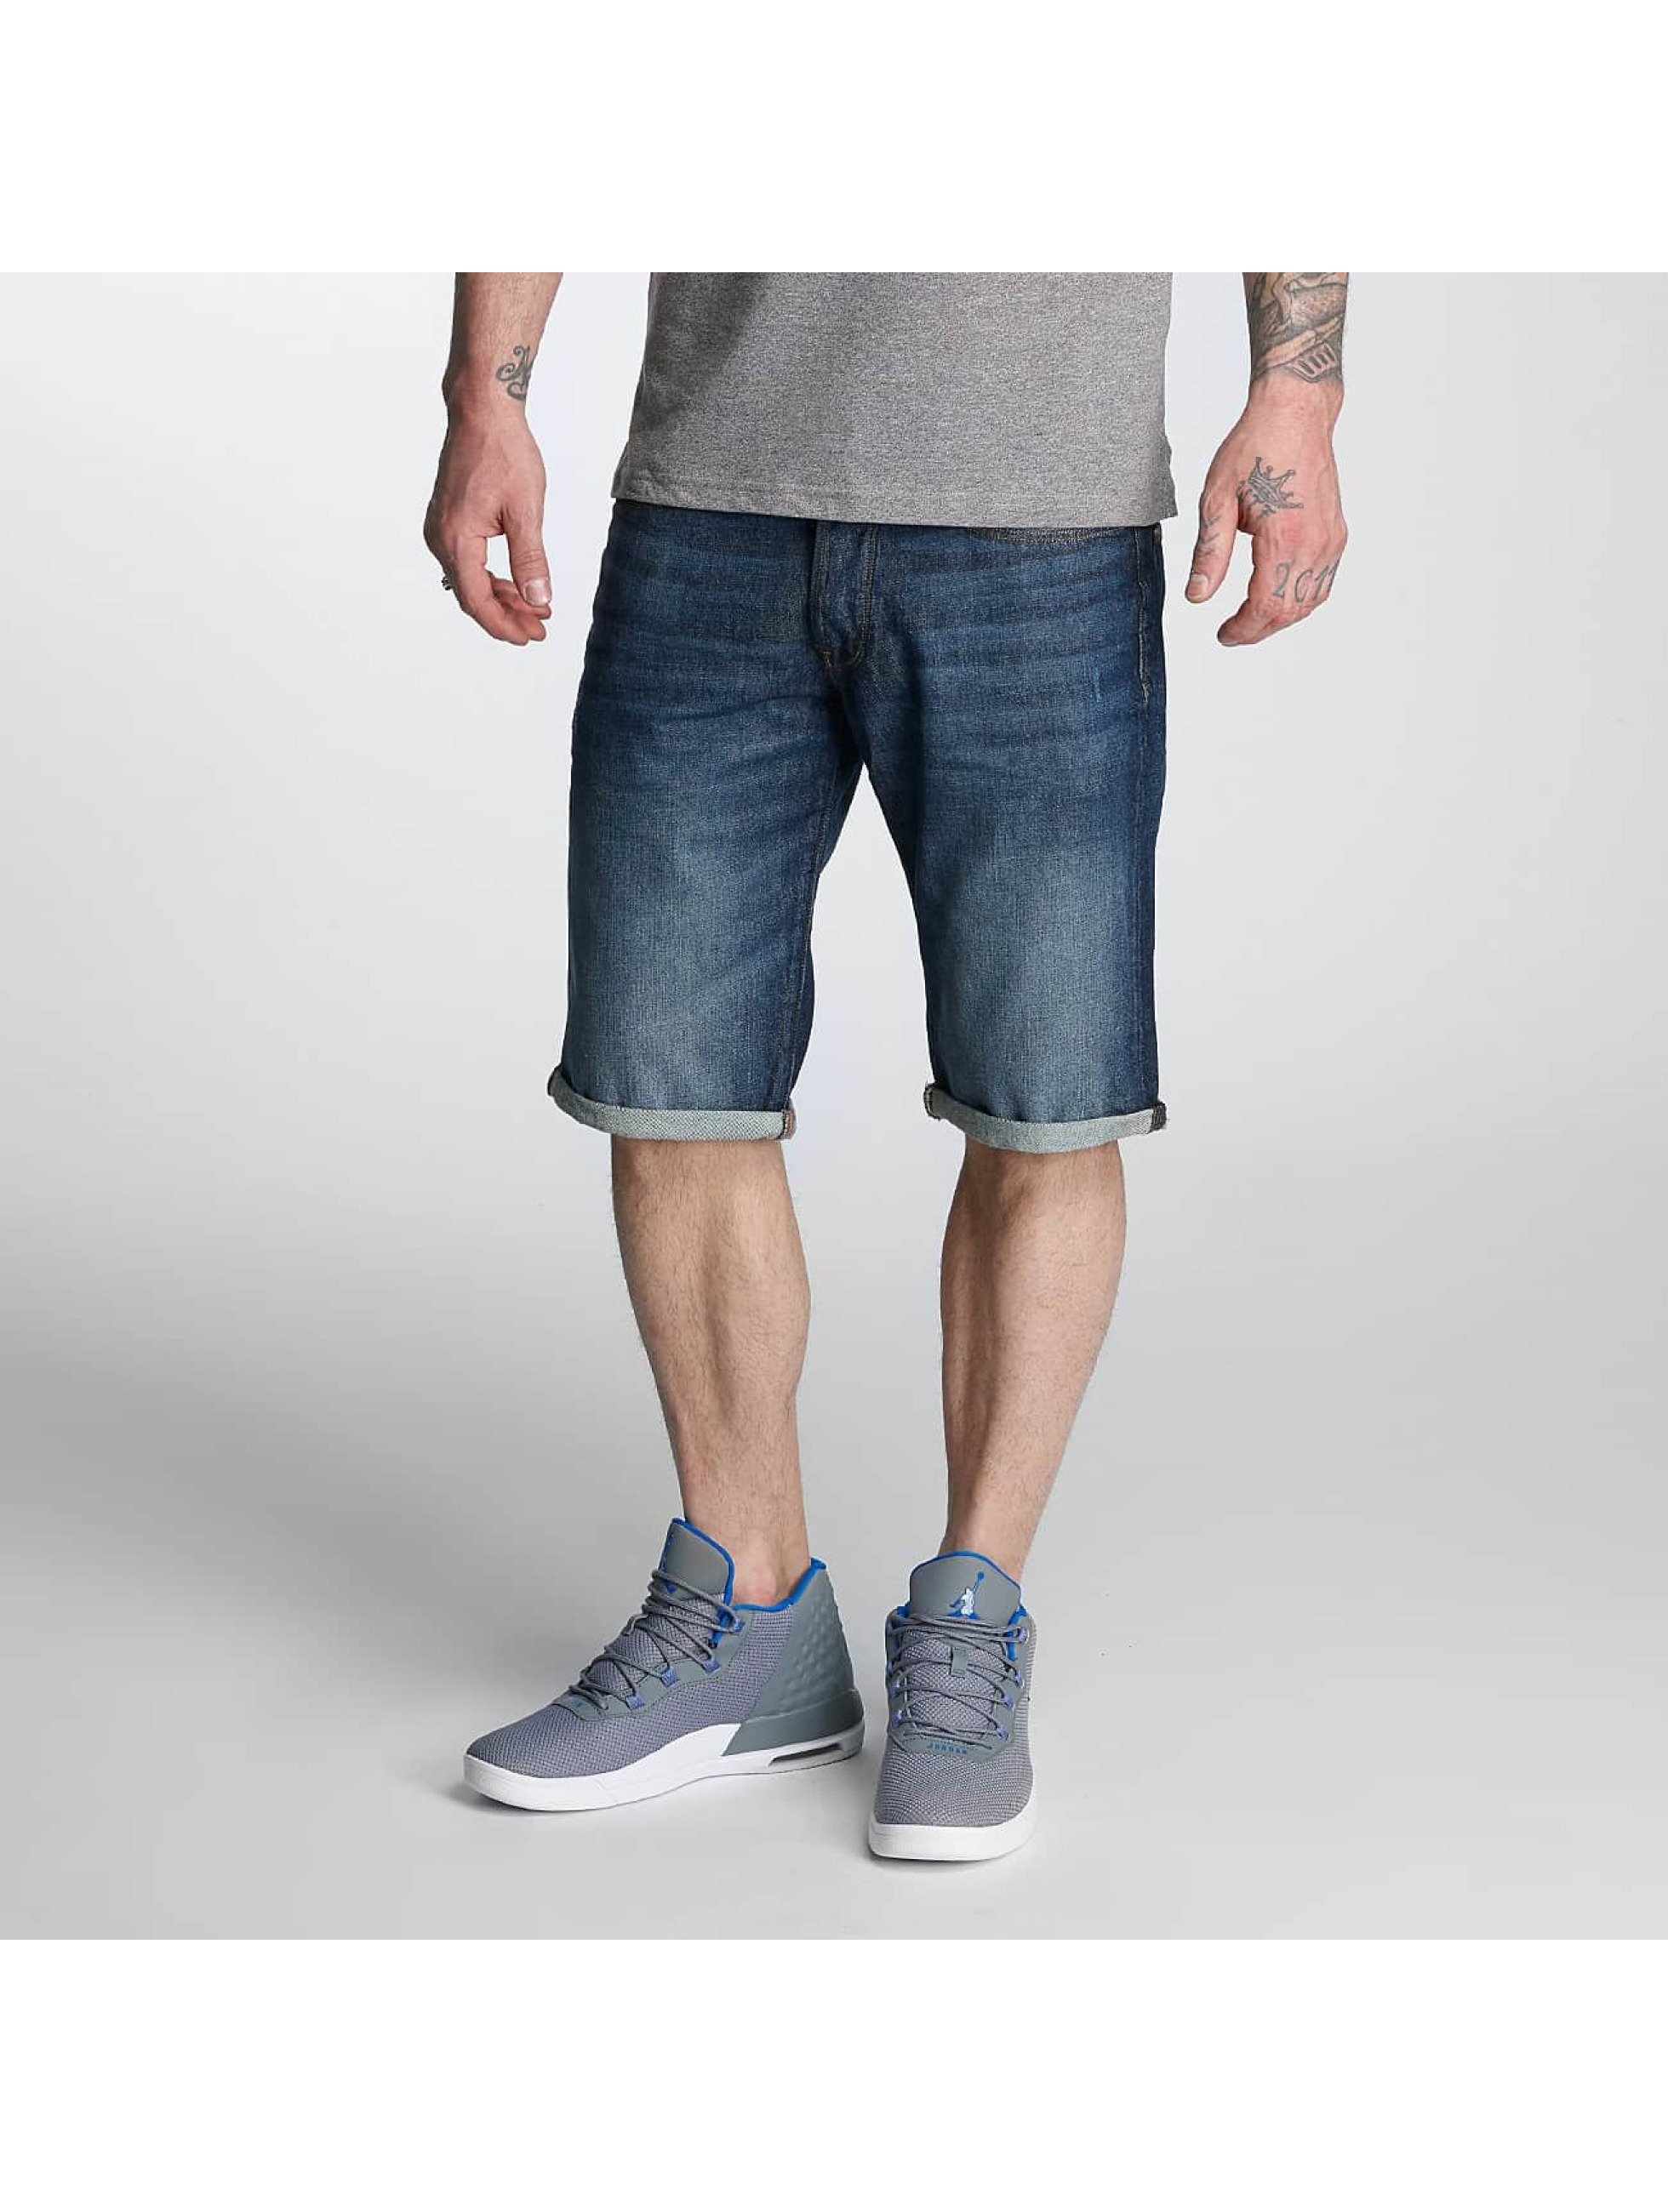 G-Star Männer Shorts 3301 1/2 Hacer in blau